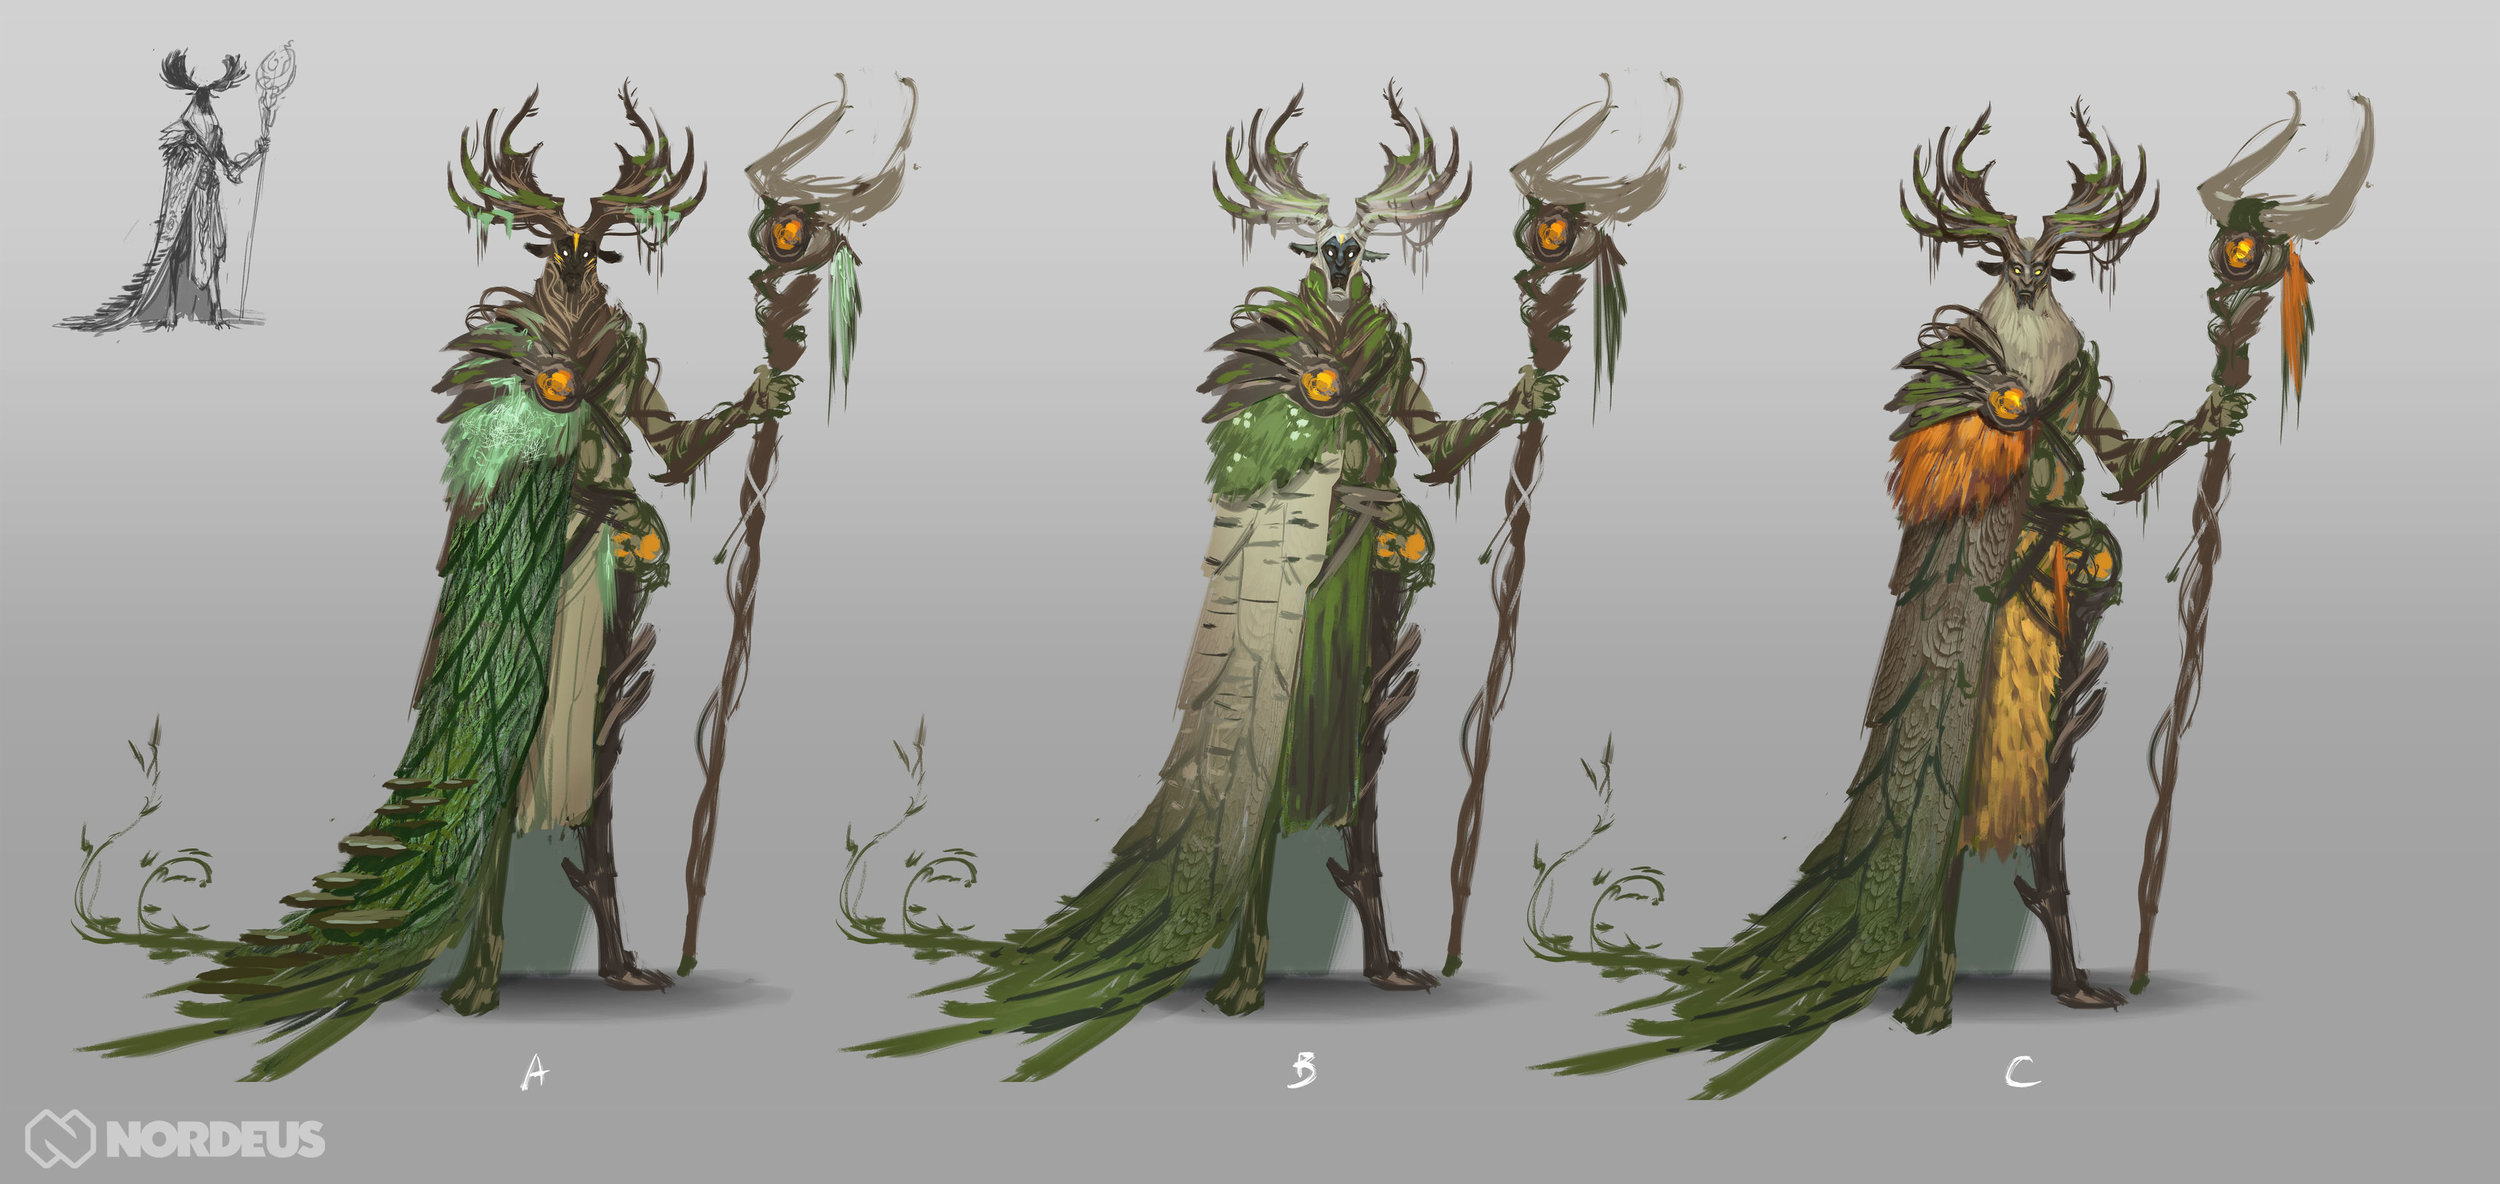 NG_idea_02_forestking_02.jpg